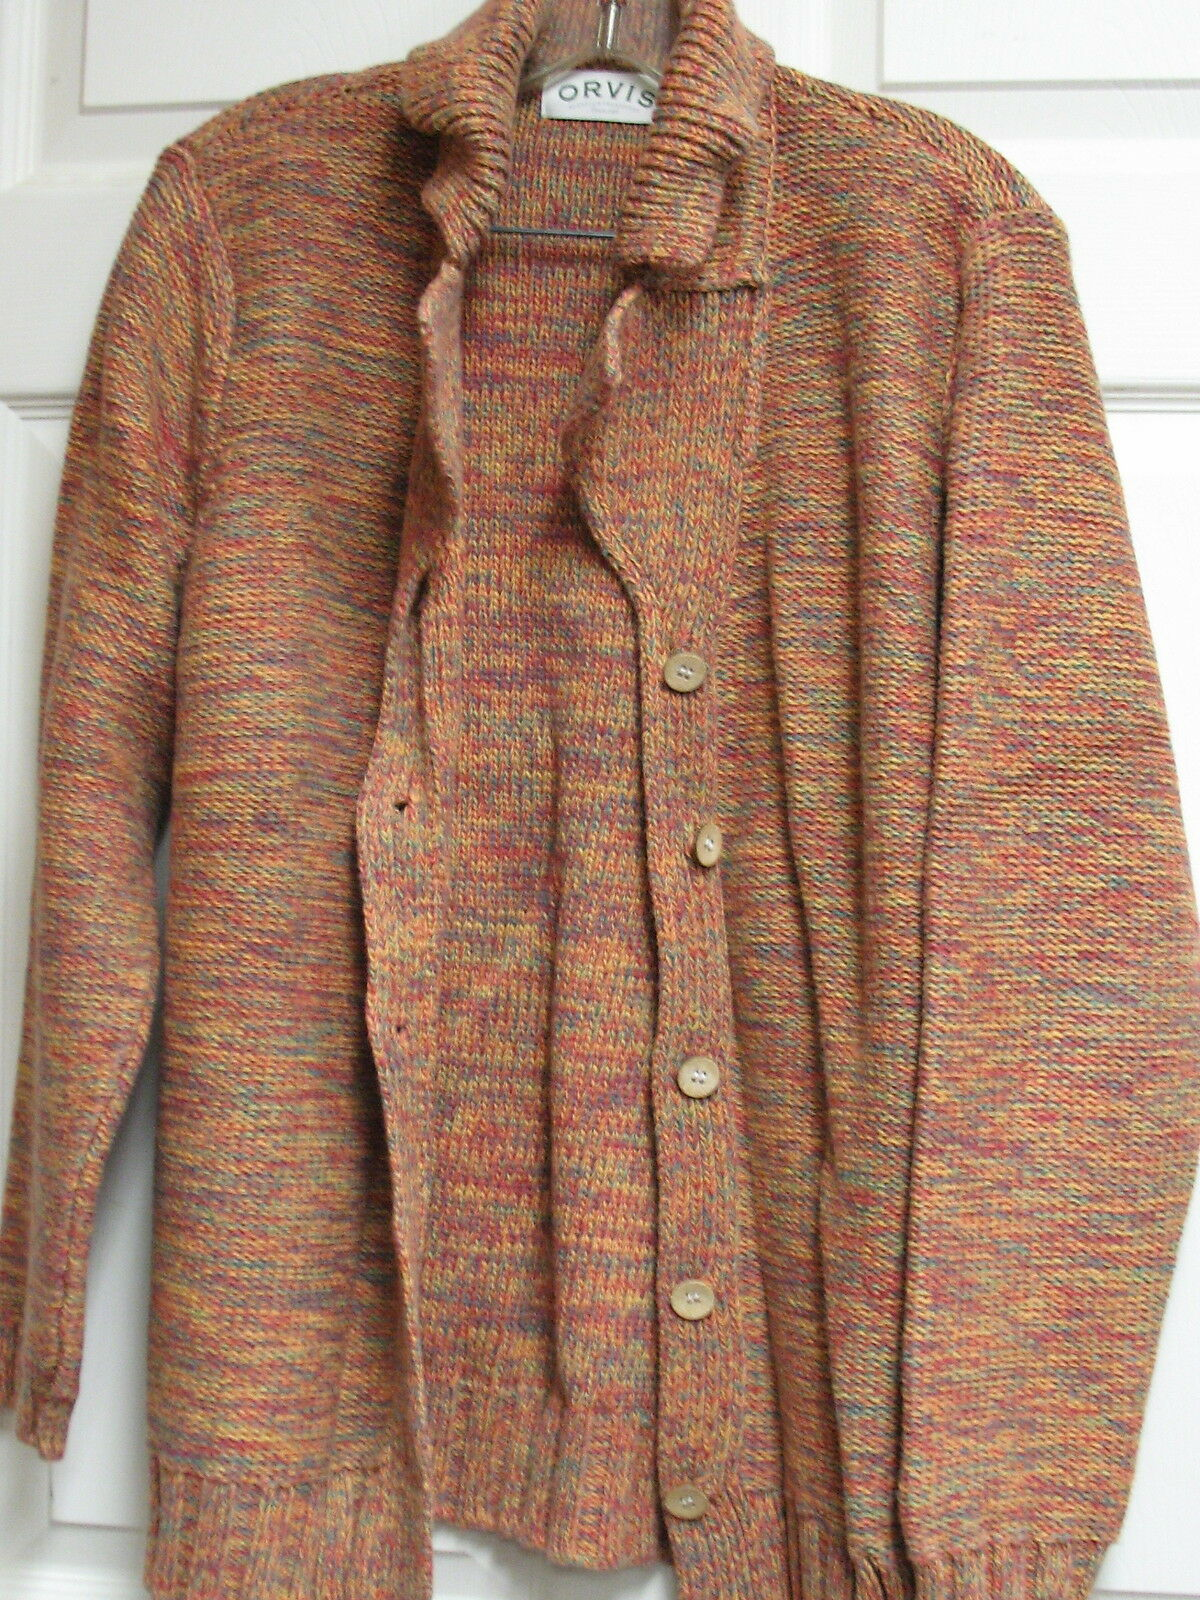 ORVIS Collared Cardigan Sweater Sweater Sweater Rainbow Multi-colord Cotton RN 70534 Size M 33b35d